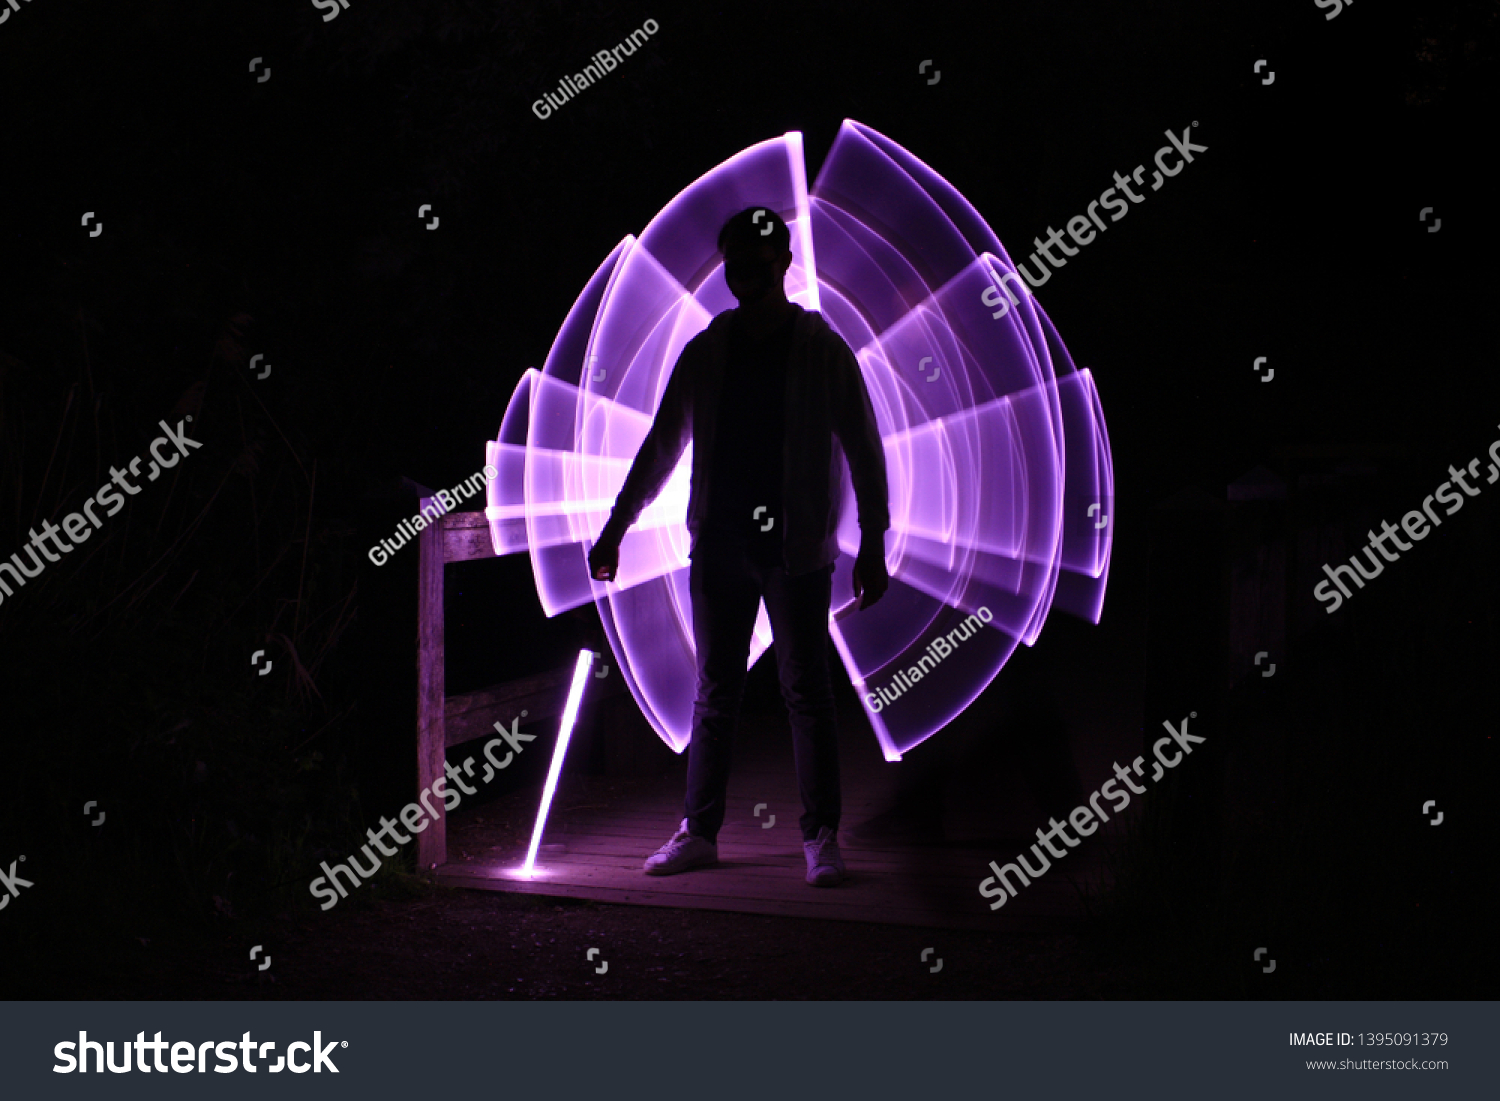 Silhouette Man Standing Lightsaber Neon Drawings People Stock Image 1395091379